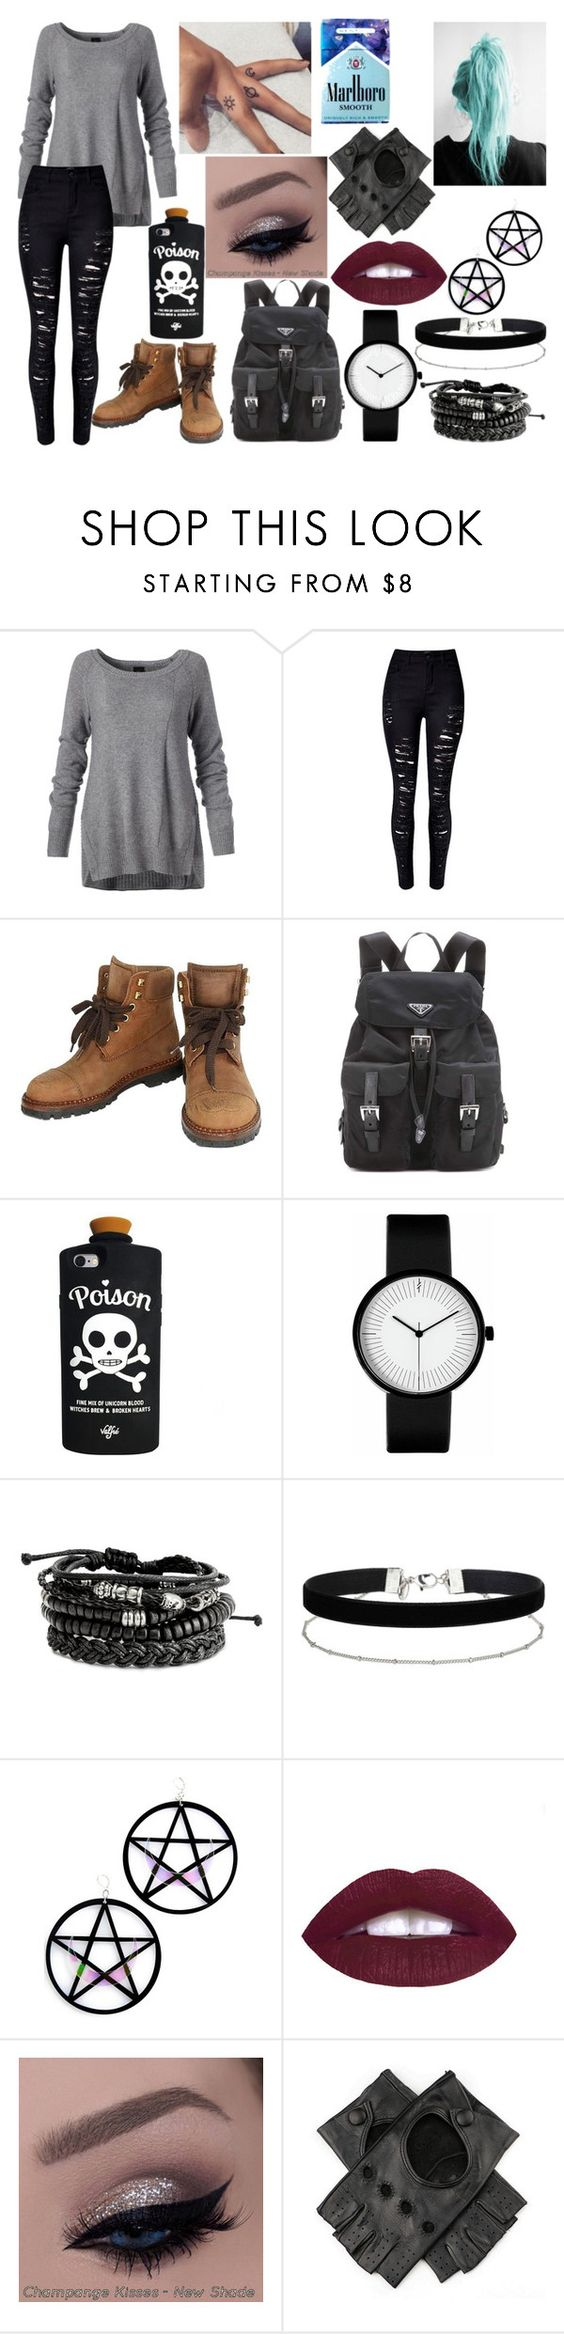 """""""1 Red Roses"""" by nikkyvanderoer ❤ liked on Polyvore featuring WithChic, Chanel, Prada, Miss Selfridge, Marina Fini and Black"""